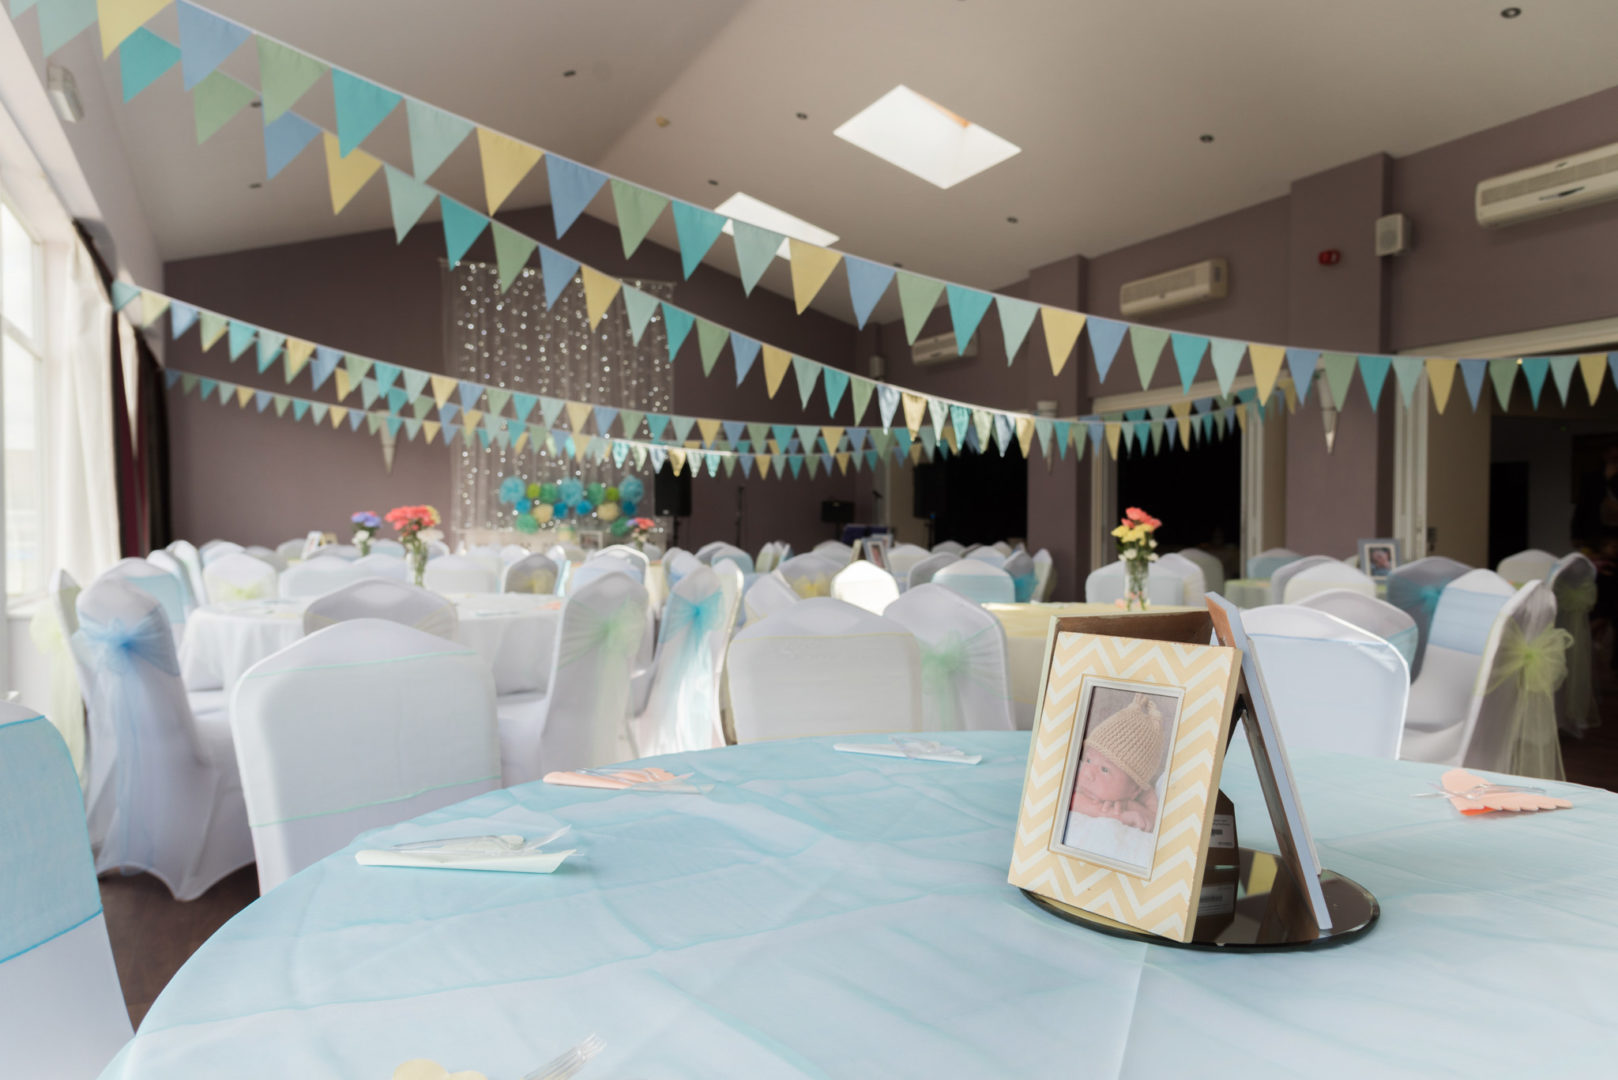 Ambleside Sports Club Christening by Nuneaton photographer AJtImages